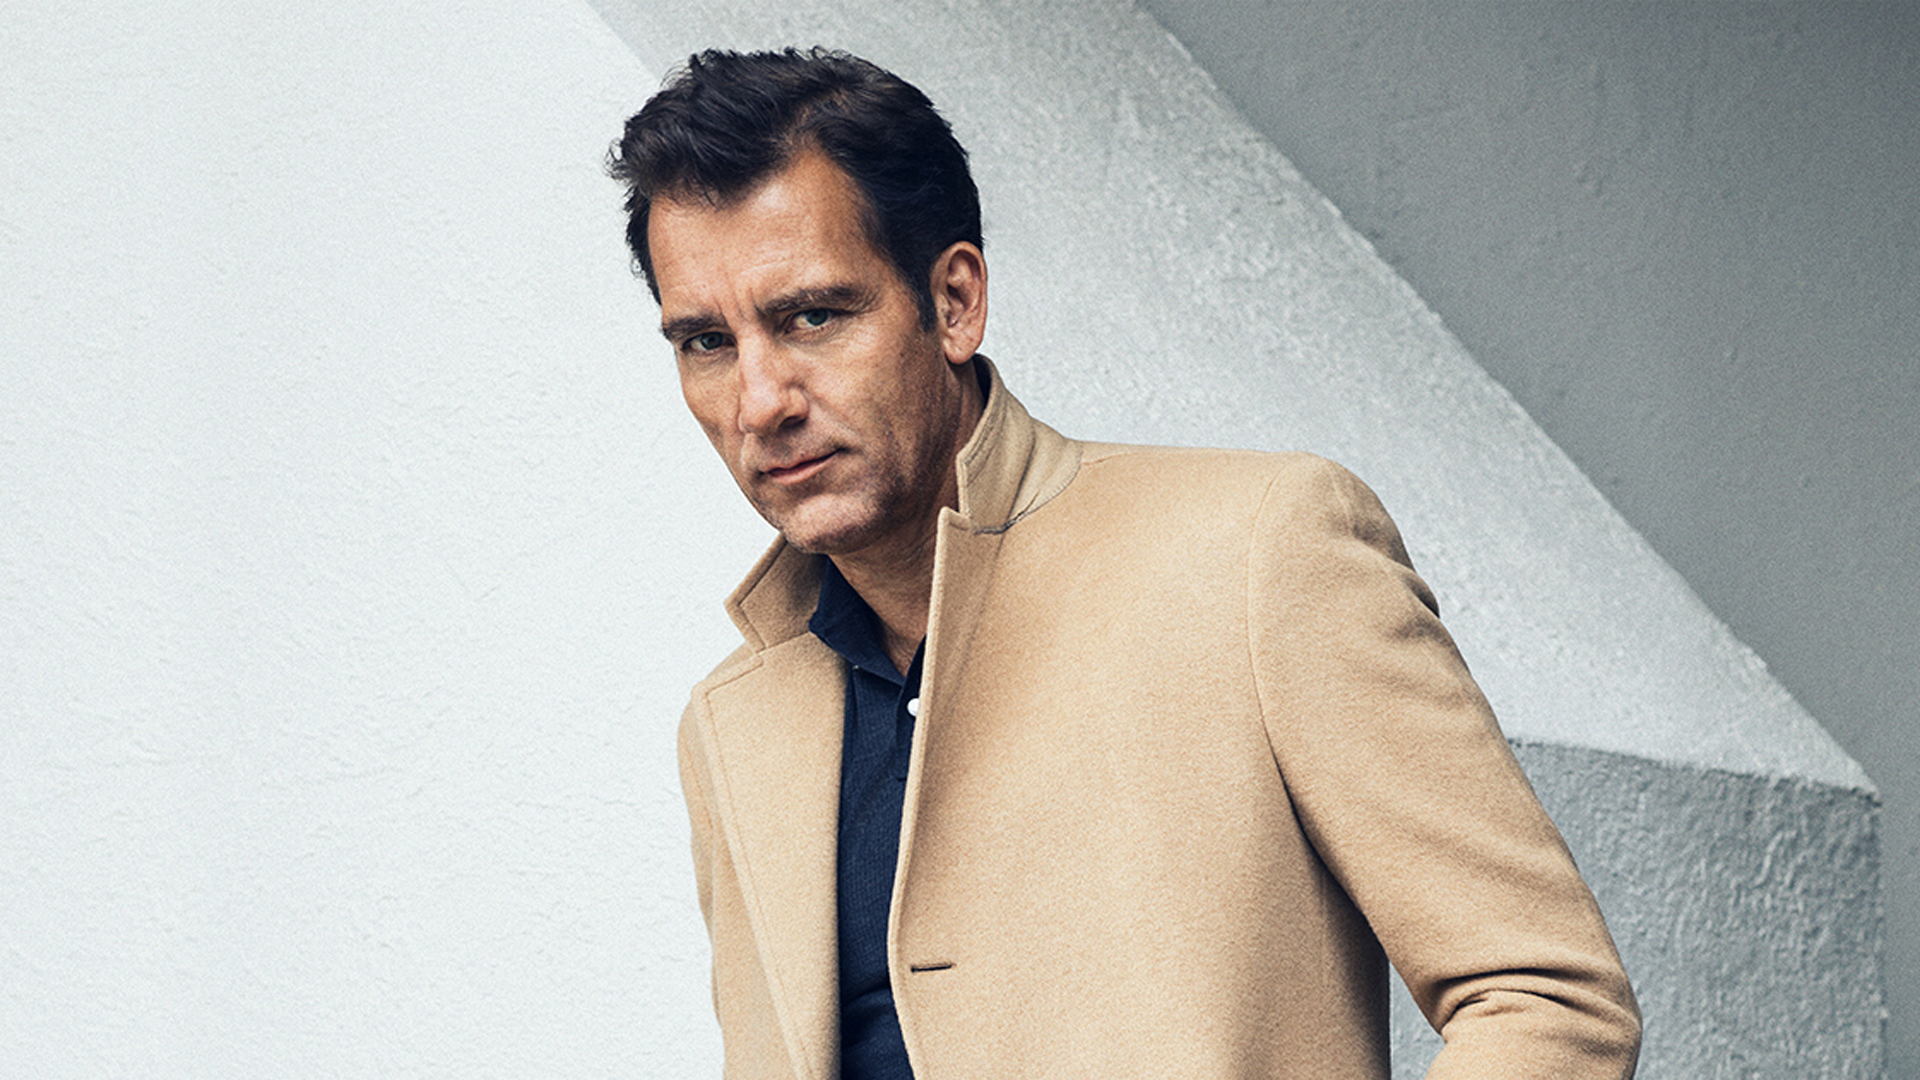 1920x1080 - Clive Owen  Wallpapers 8